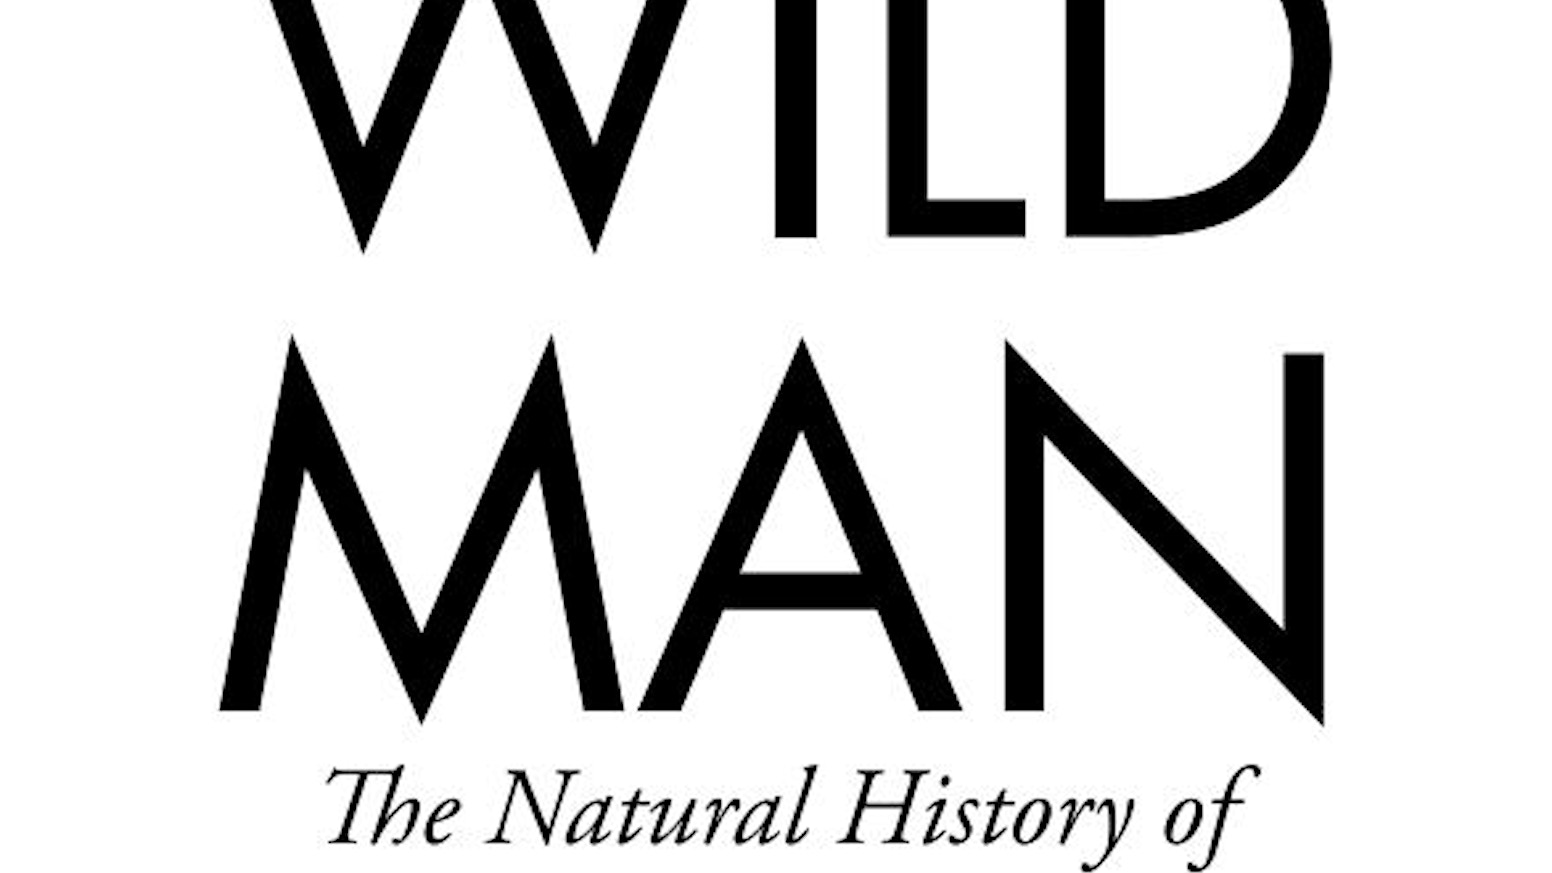 WILD MAN Research + Lecture Series and Tour by T Edward